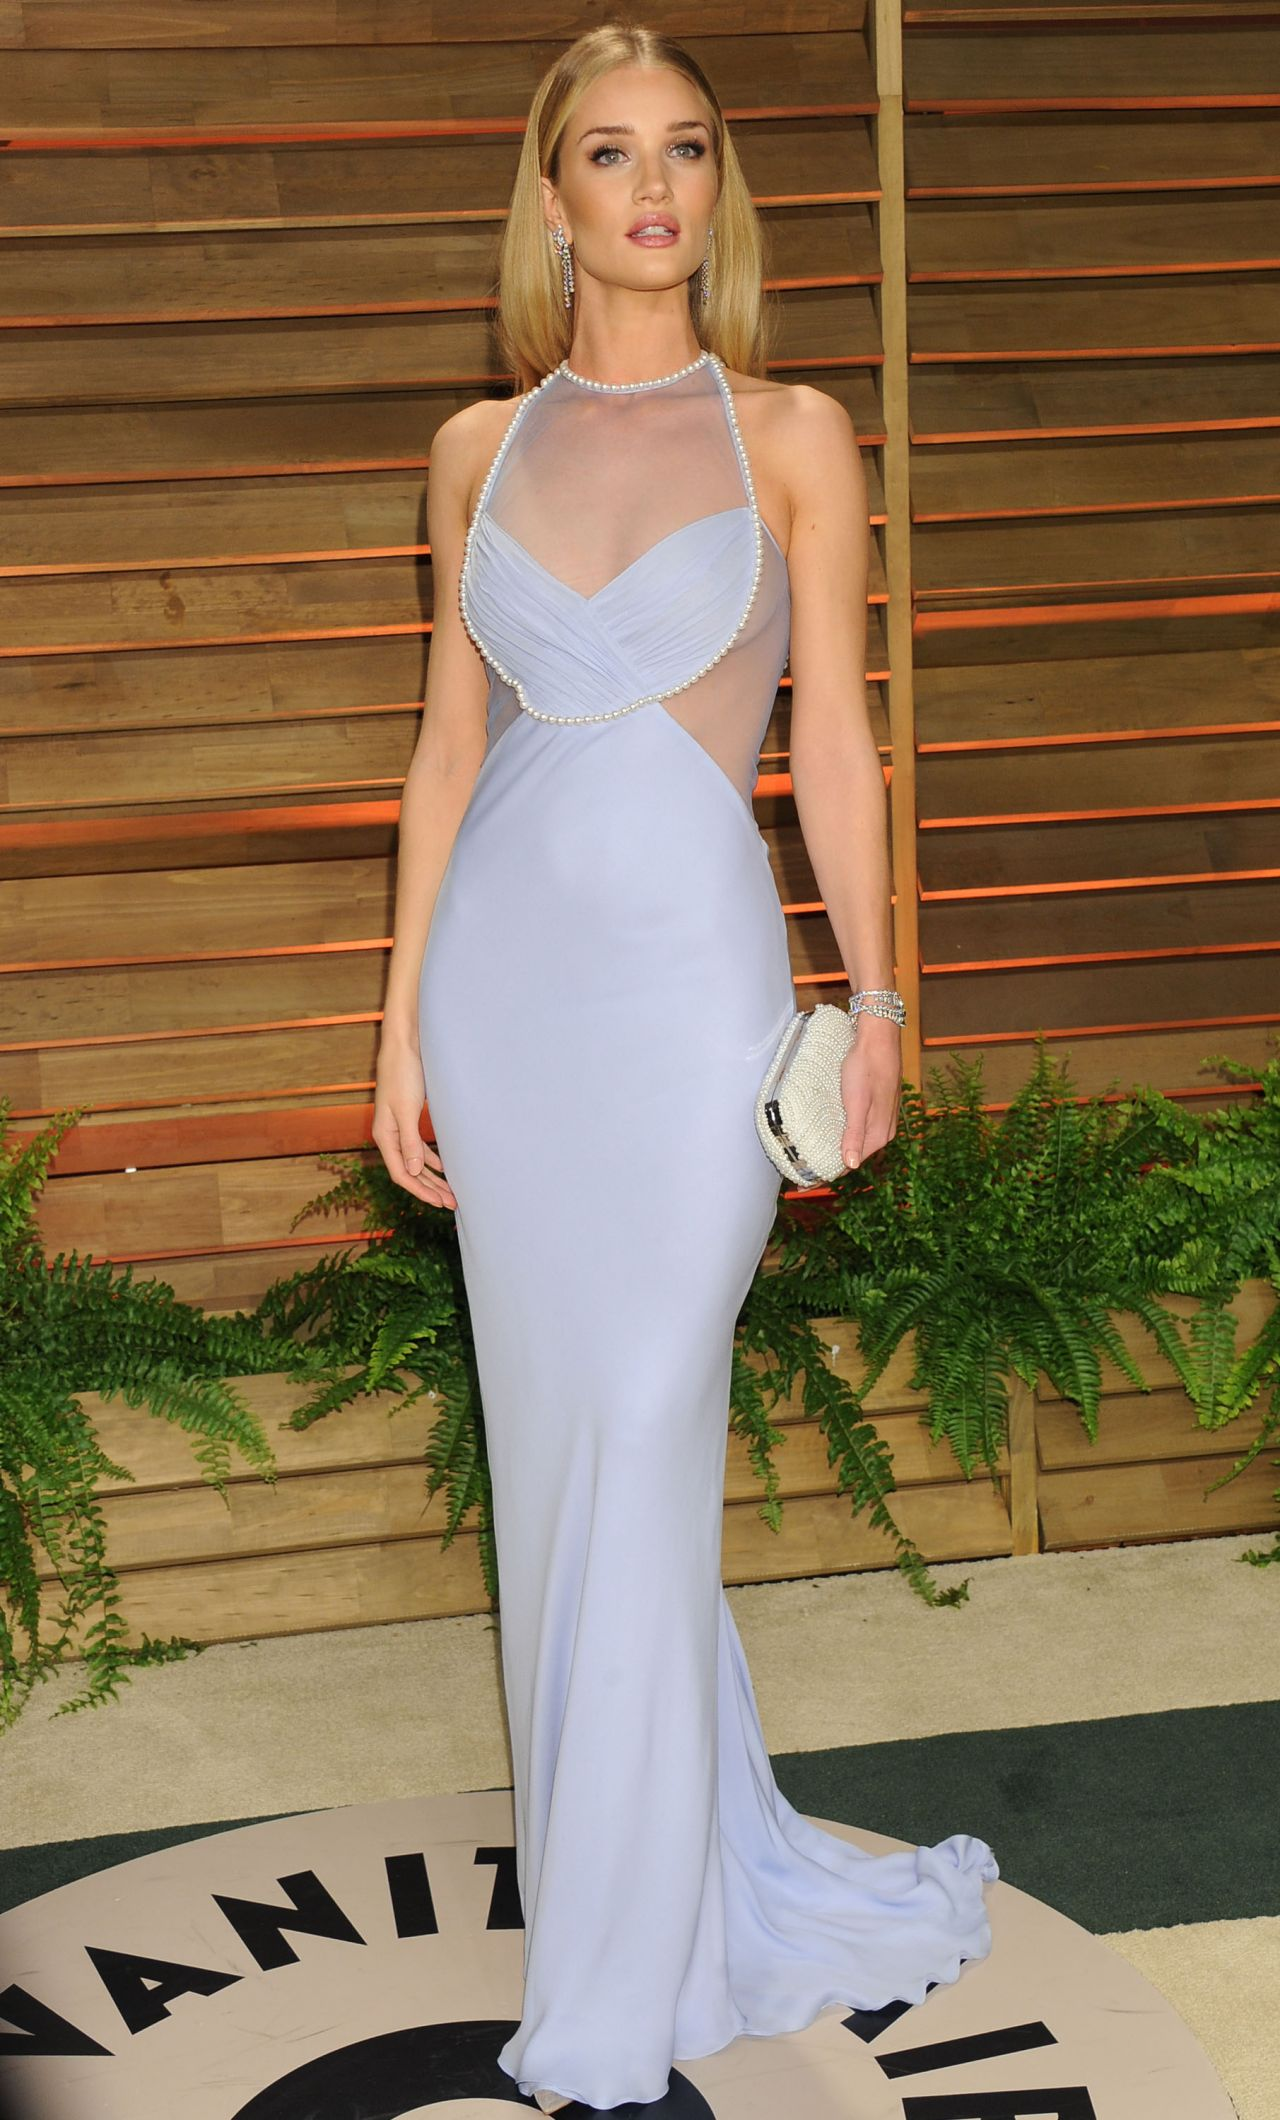 RosRosie Huntington- Whiteley Wearing Cushnie et Ochs Gown - 2014 Vanity Fair Oscar Party